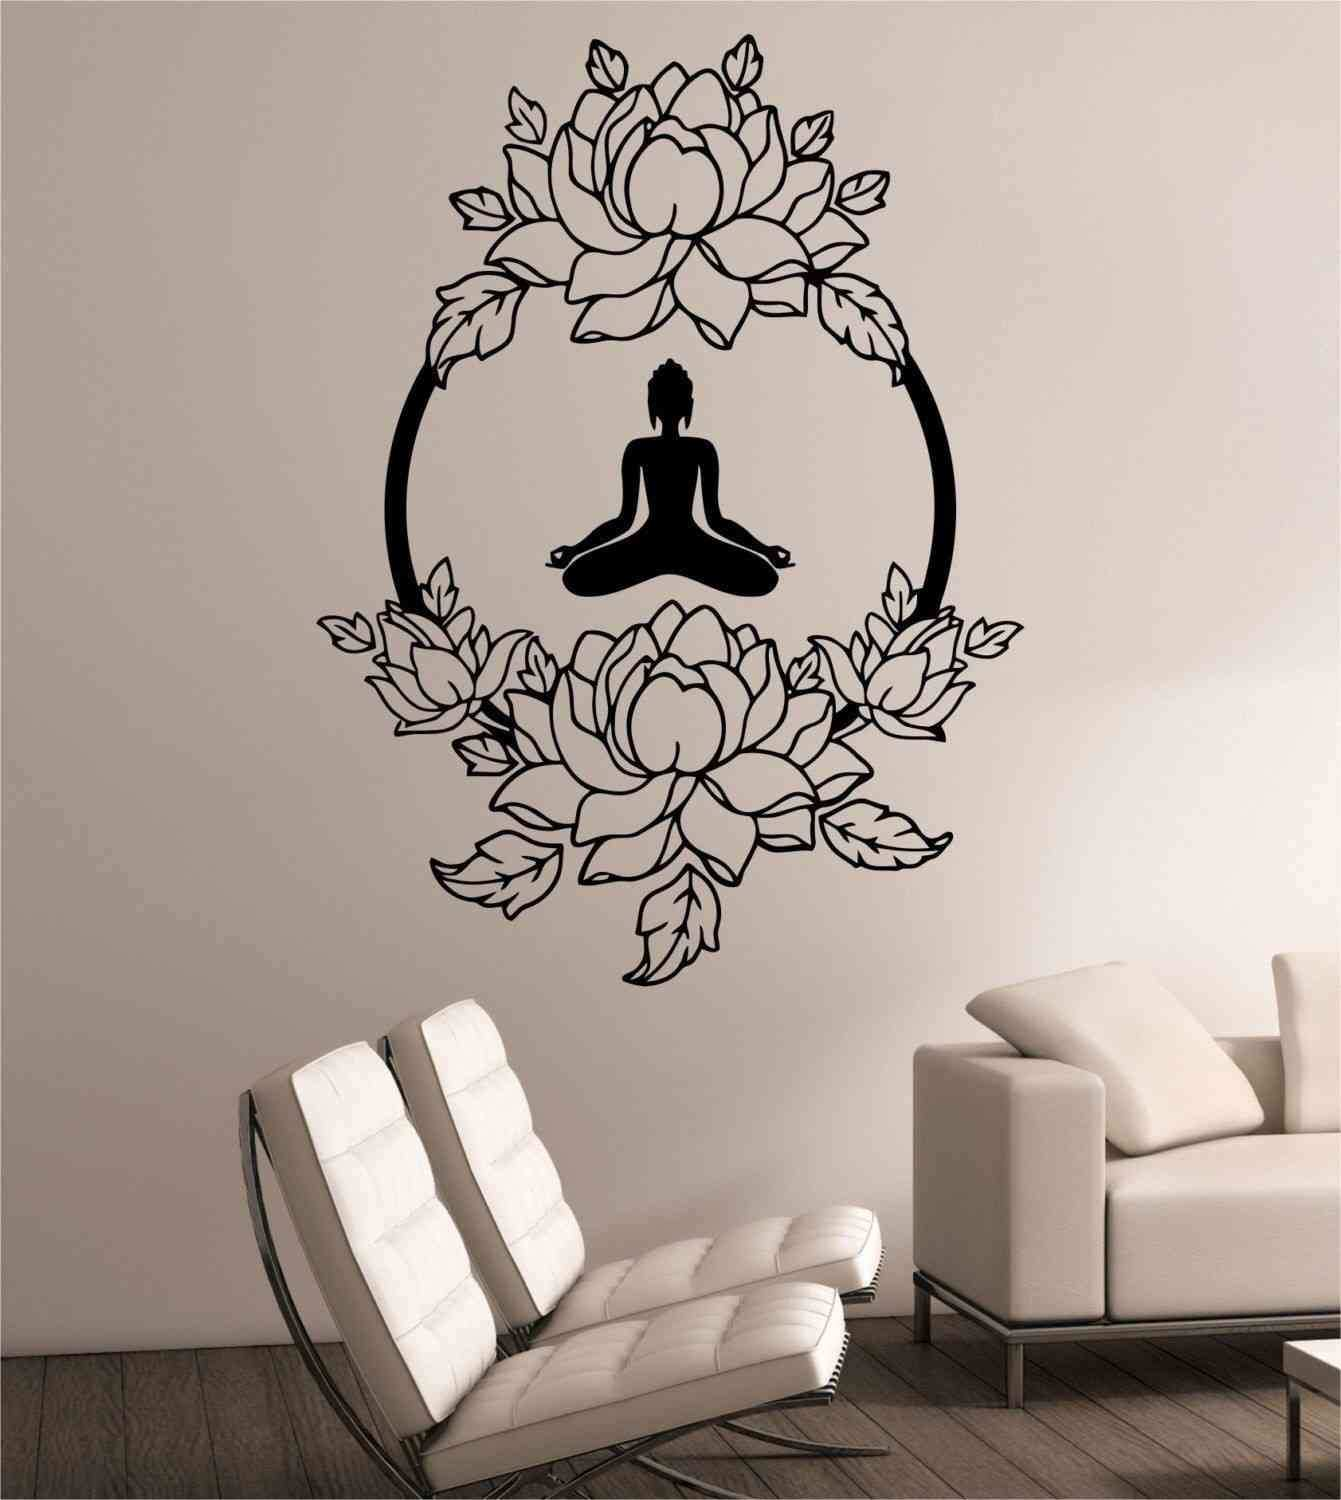 Wall Decal Luxury 1 Kirkland Wall Decor Home Design 0d Outdoor for